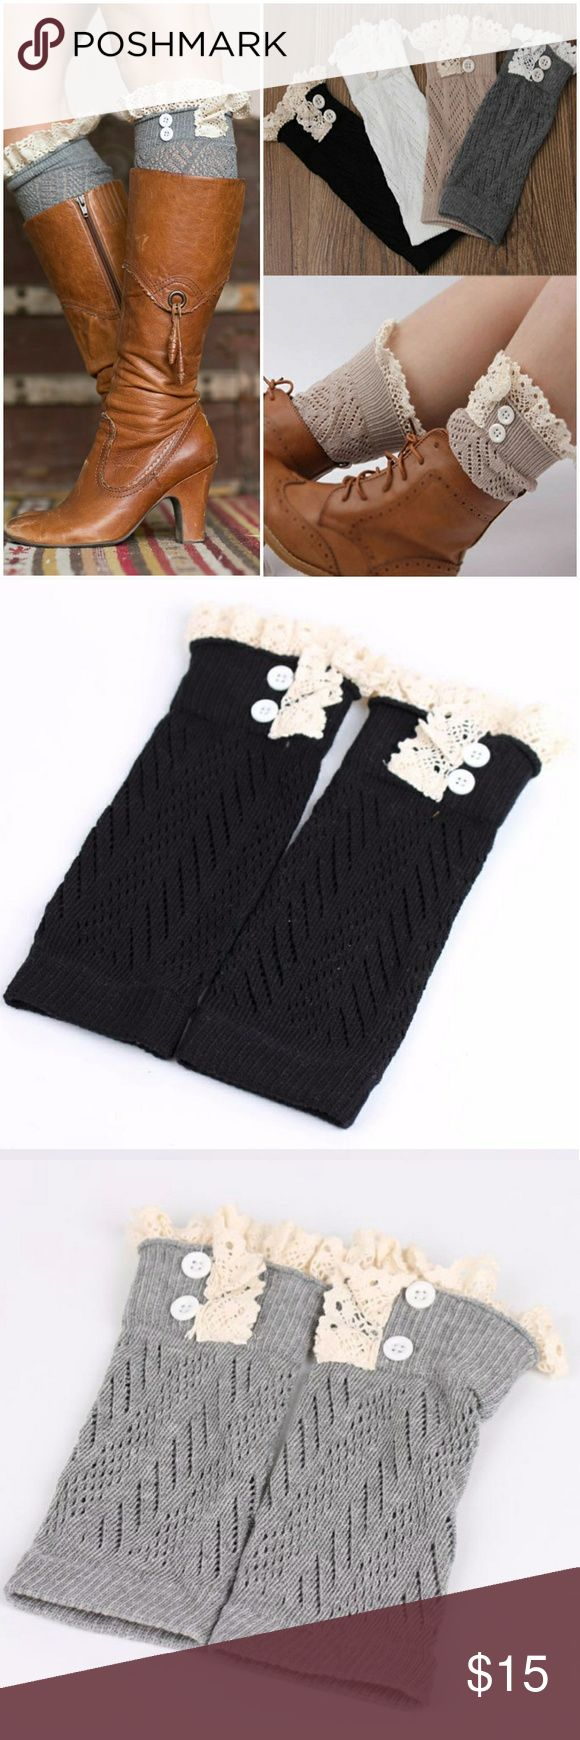 Lace Trim Knit Boot Cuffs Cute lace trim knit boot cuffs with button detail. Comes in Black, Gray and White Accessories Hosiery & Socks